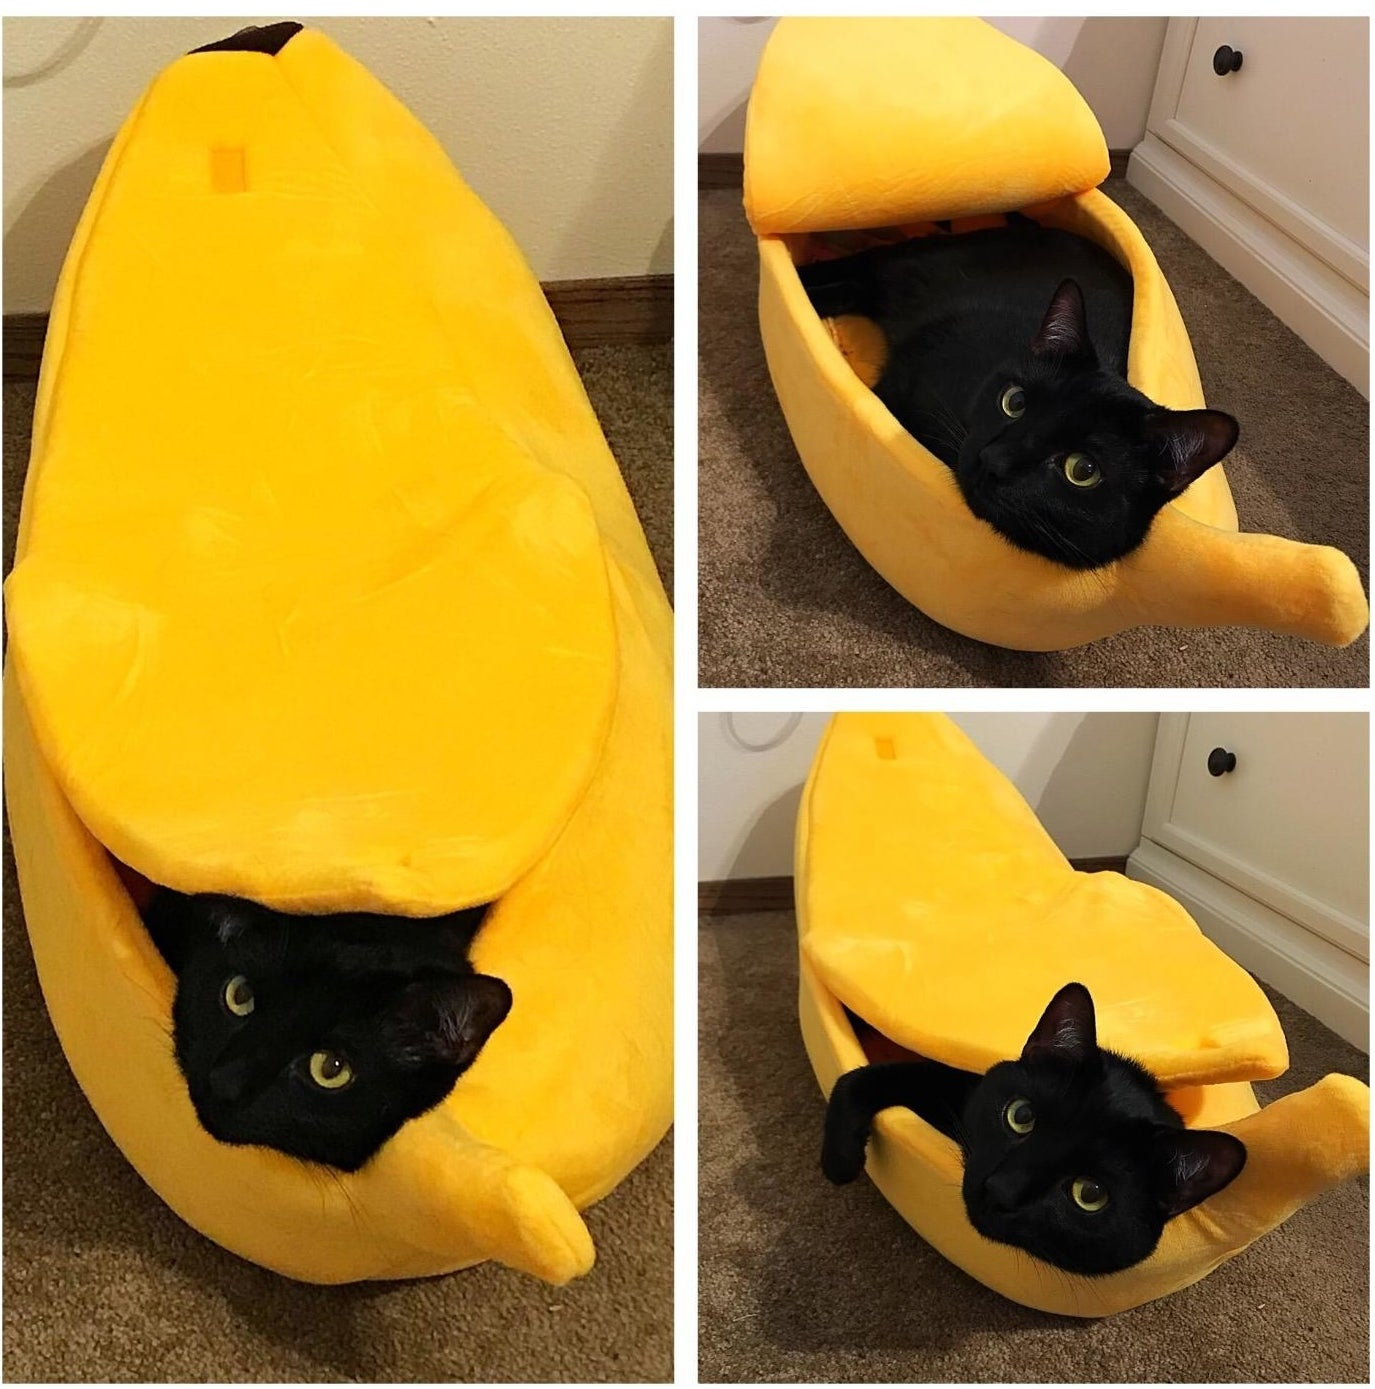 """A cat inside the banana bed, which has a """"peel"""" that can be pulled over the opening to cover the cat as they lie inside"""